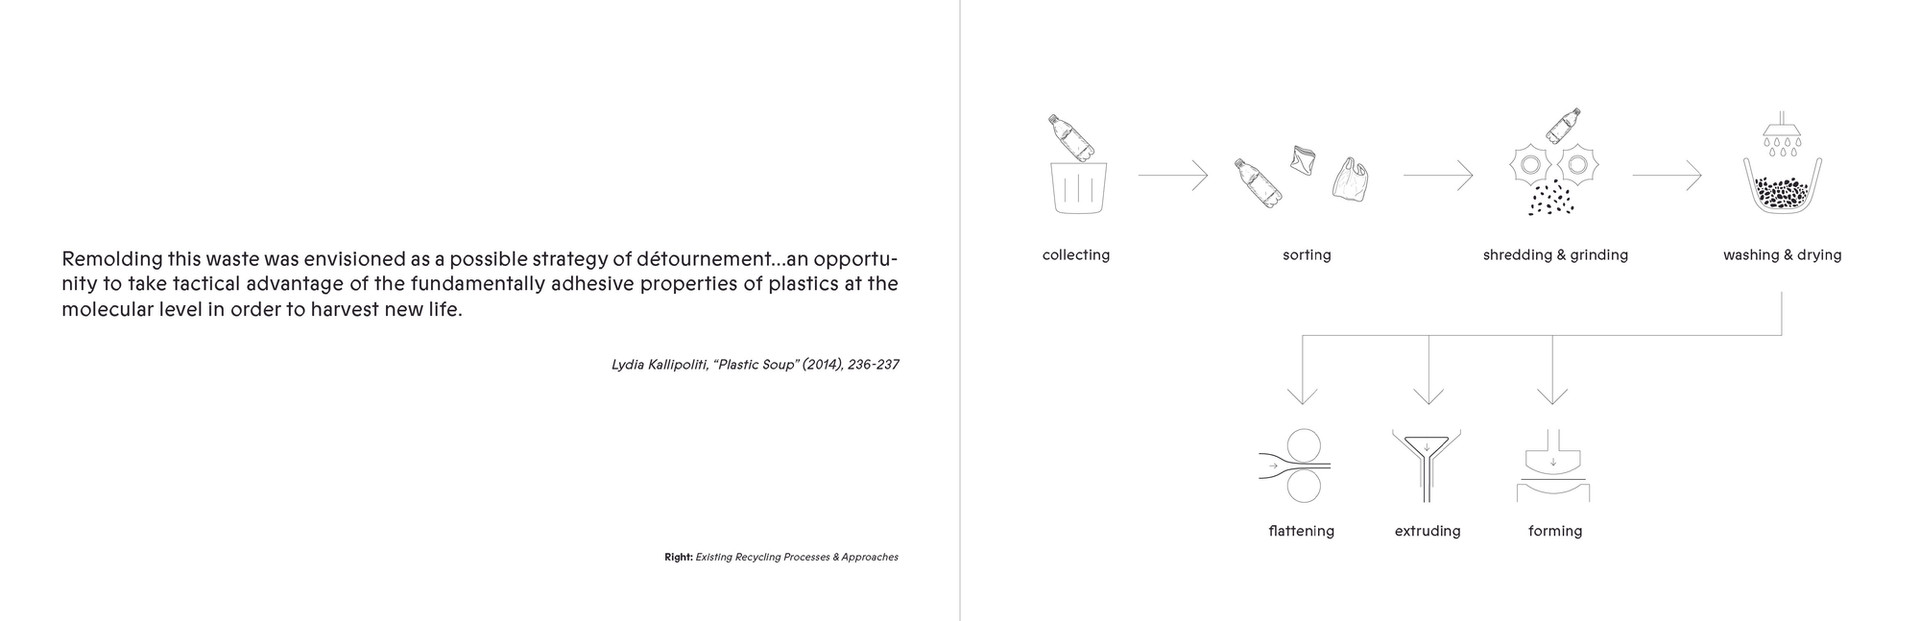 thesis book contents19.jpg